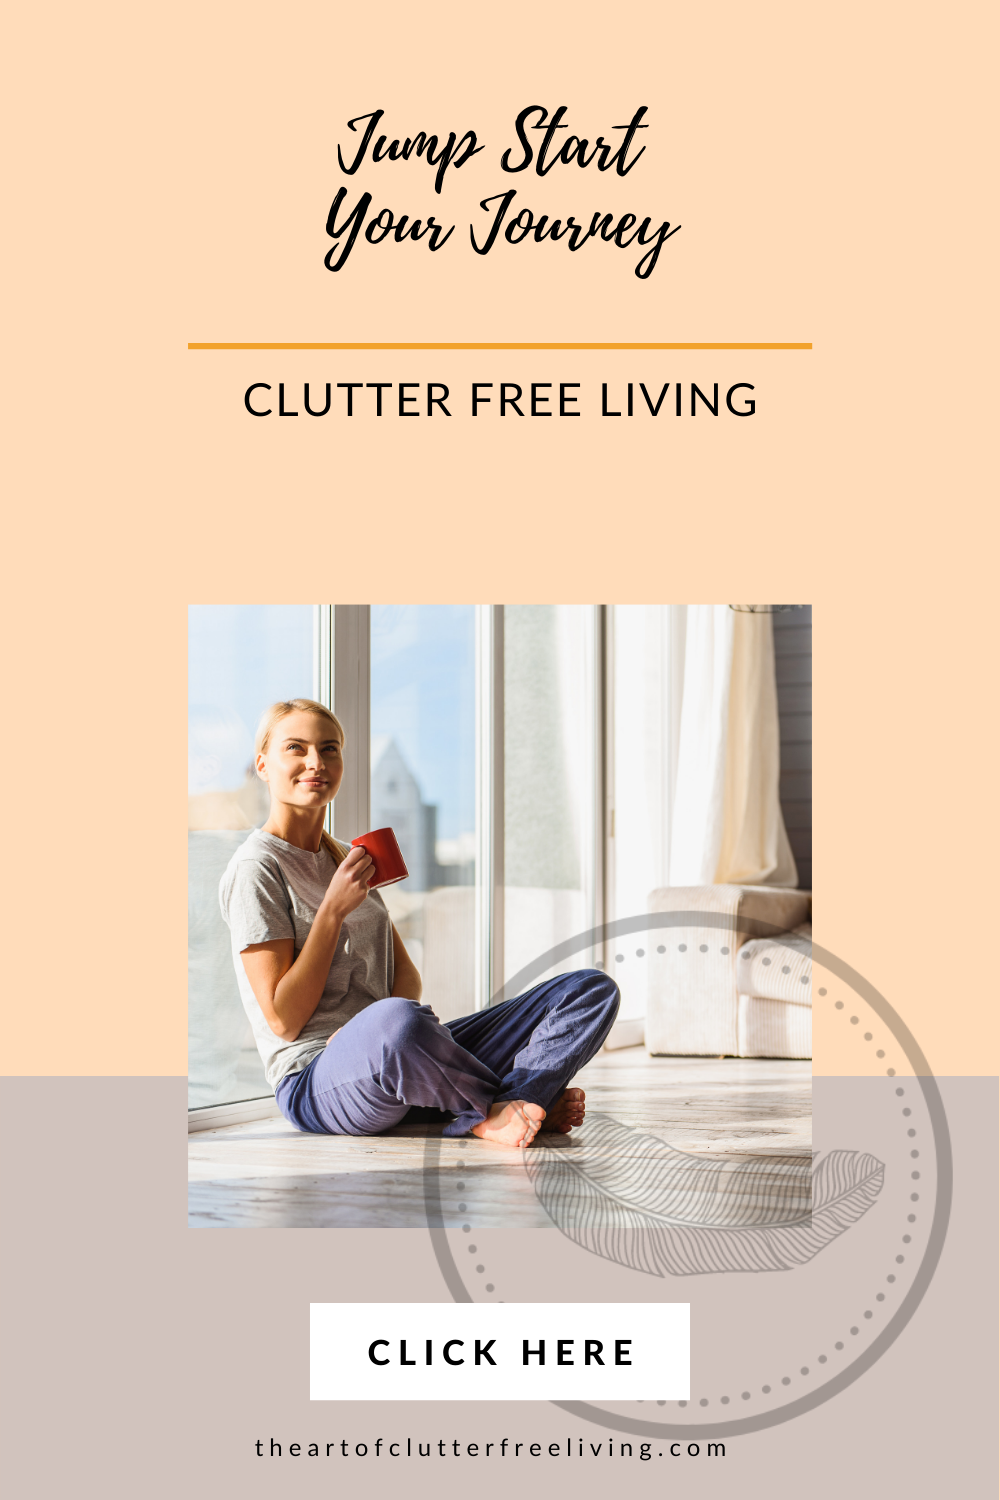 Jump Start Your Clutter Free living journey